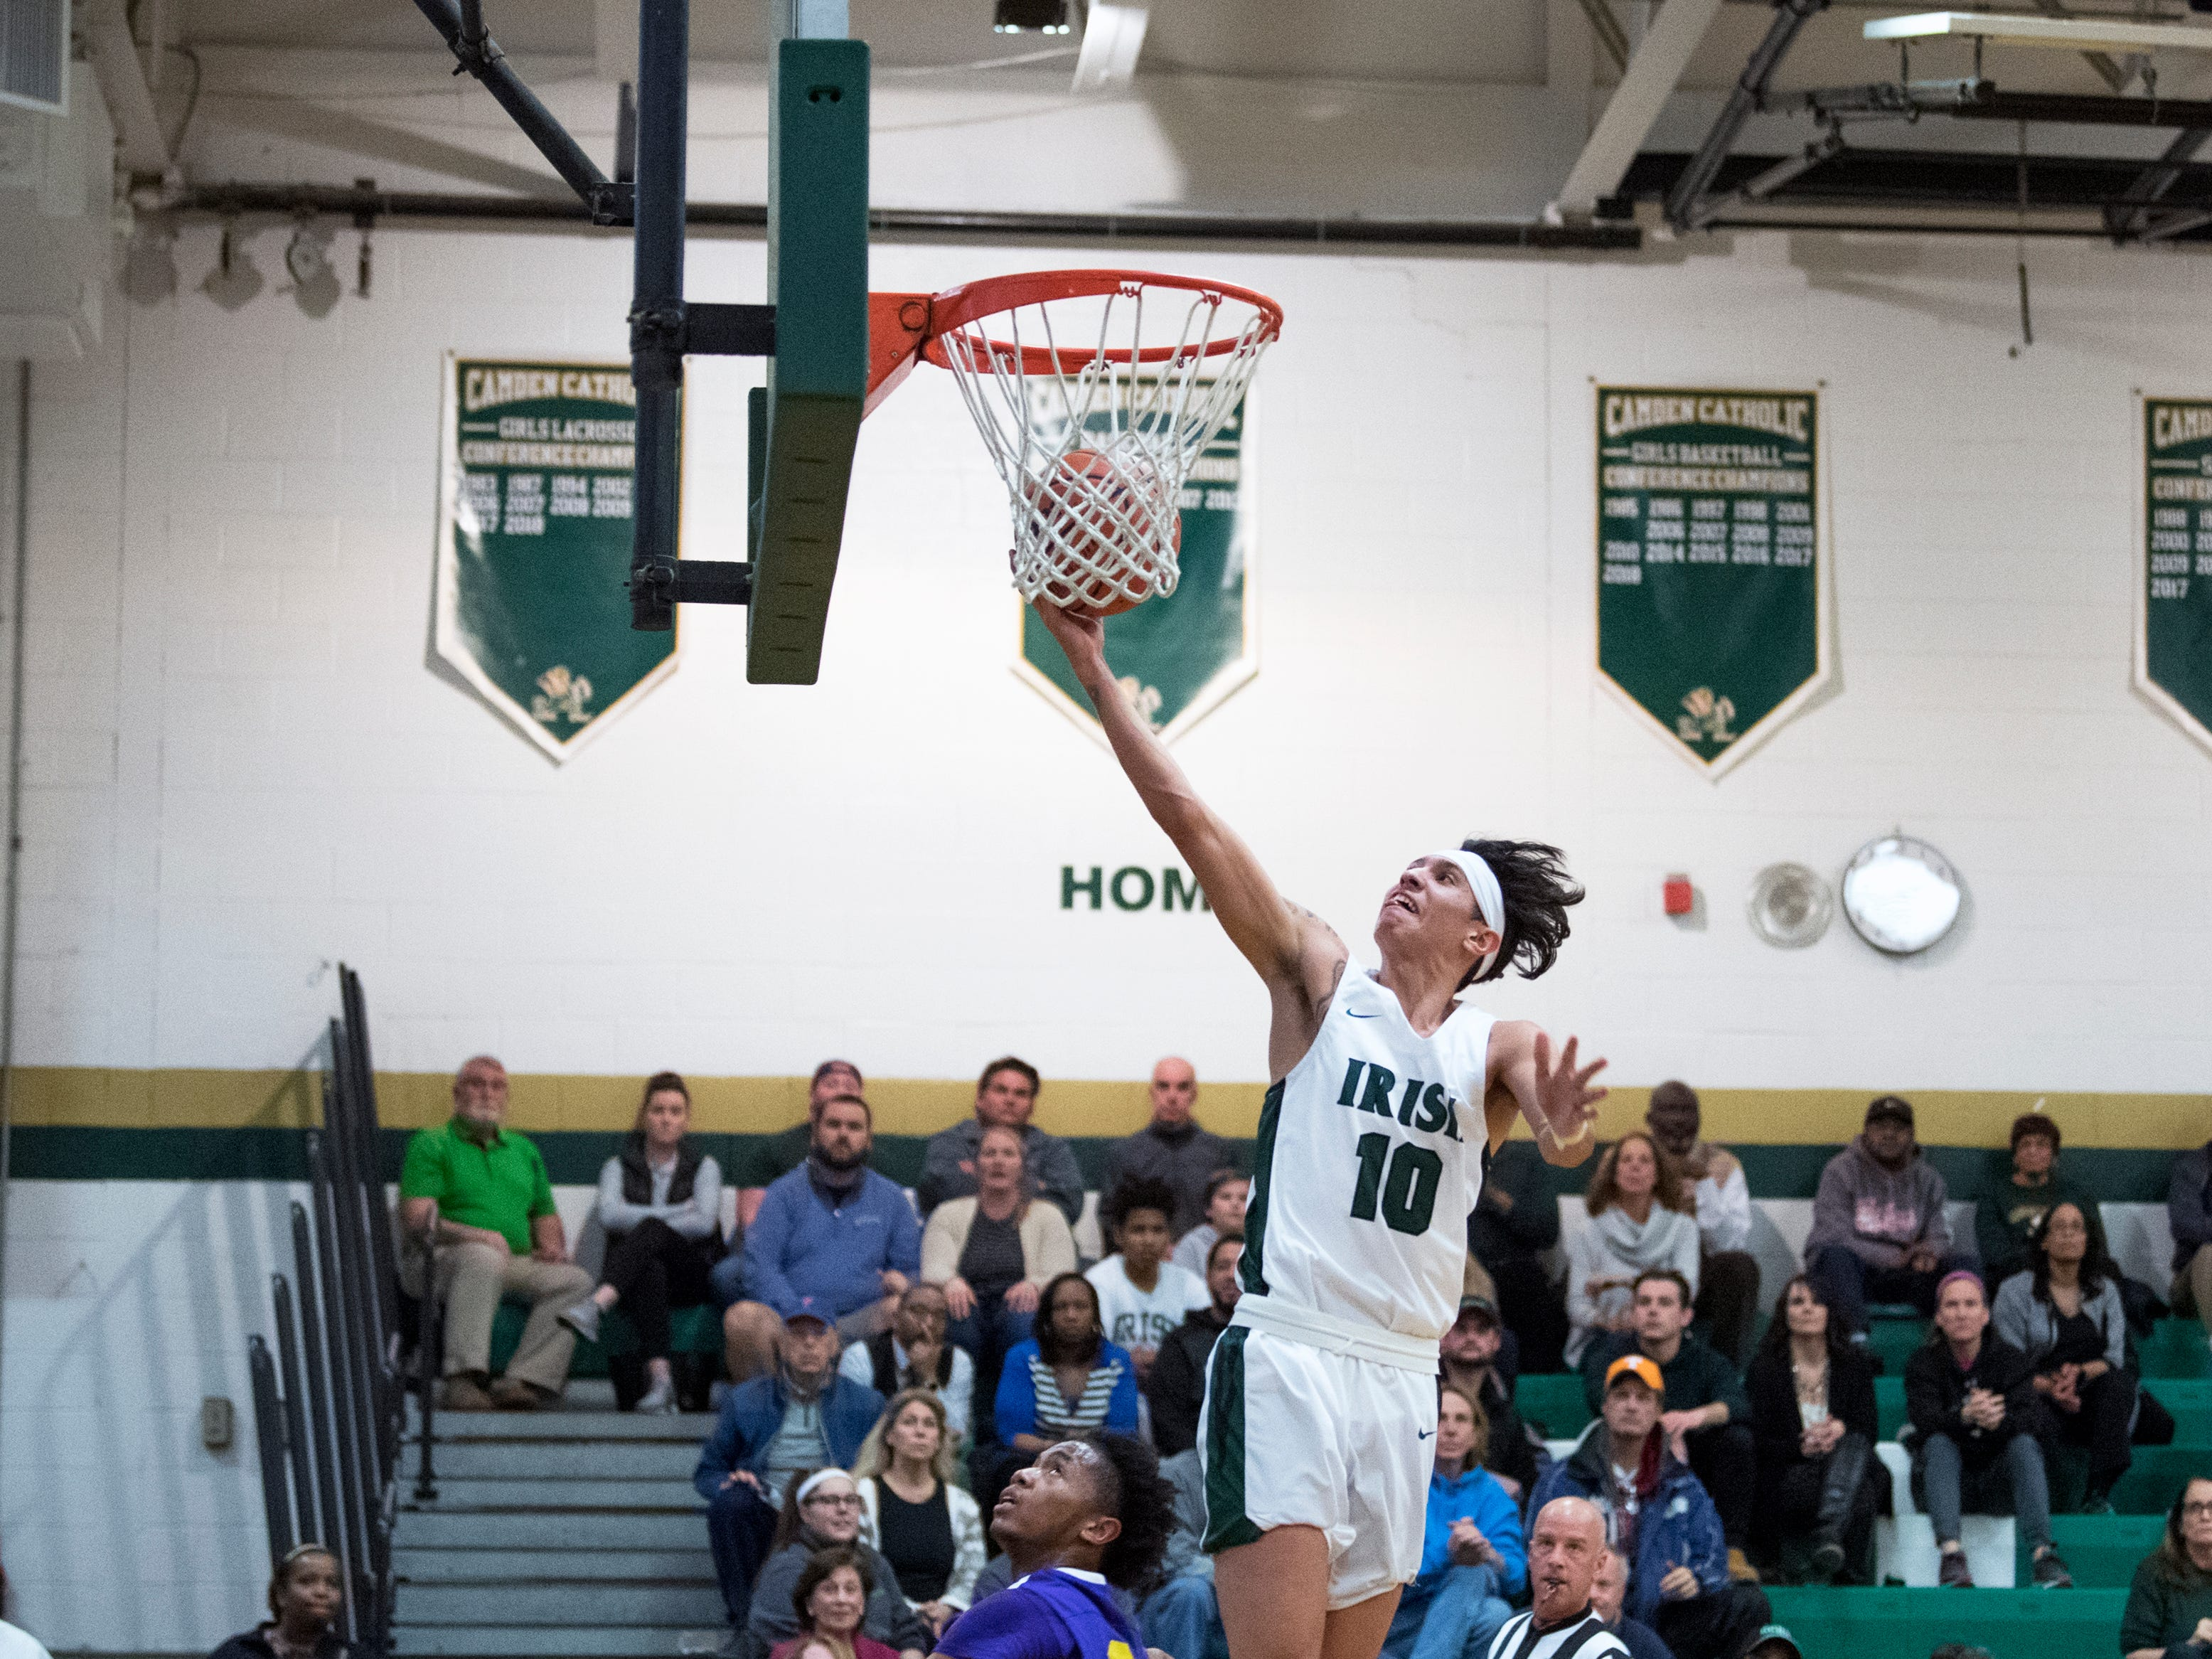 Camden Catholic's Valen Tejeda (10) drives to the basket against Camden Thursday, Feb. 21, 2019 at Camden Catholic High School in Cherry Hill, N.J. Camden Catholic won 57-54.